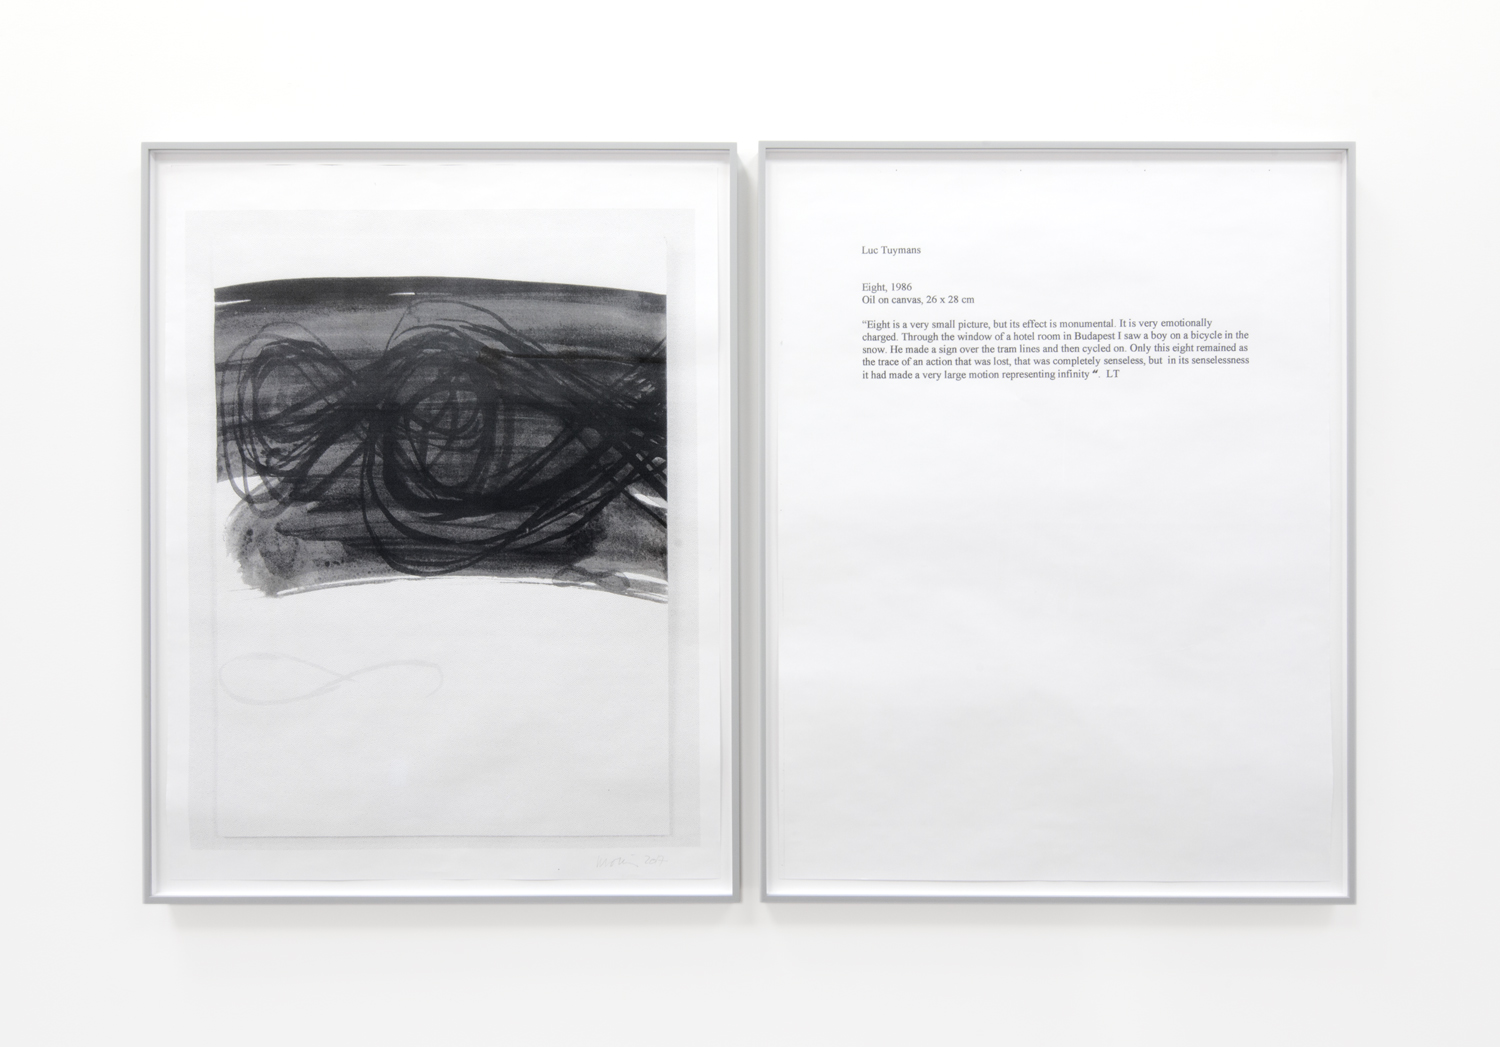 THERESE BOLLIGER  One Work with Footnote (Luc Tuymans 1)  2015-2017 diptych; hybrid prints edition 1 of 1 36 x 29 inches each